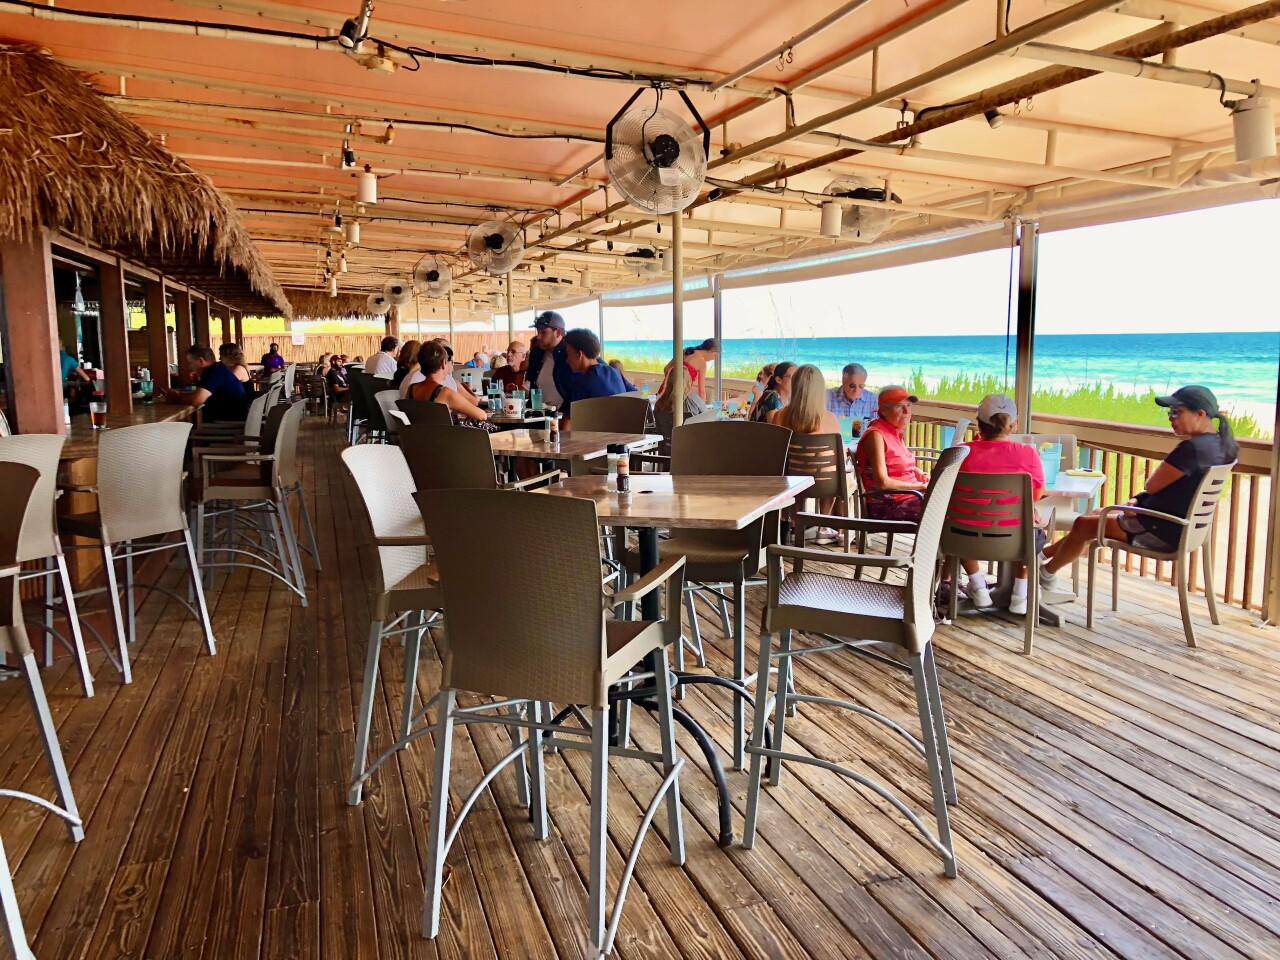 Shuckers on the Beach has dining available inside and outside with an ocean view.